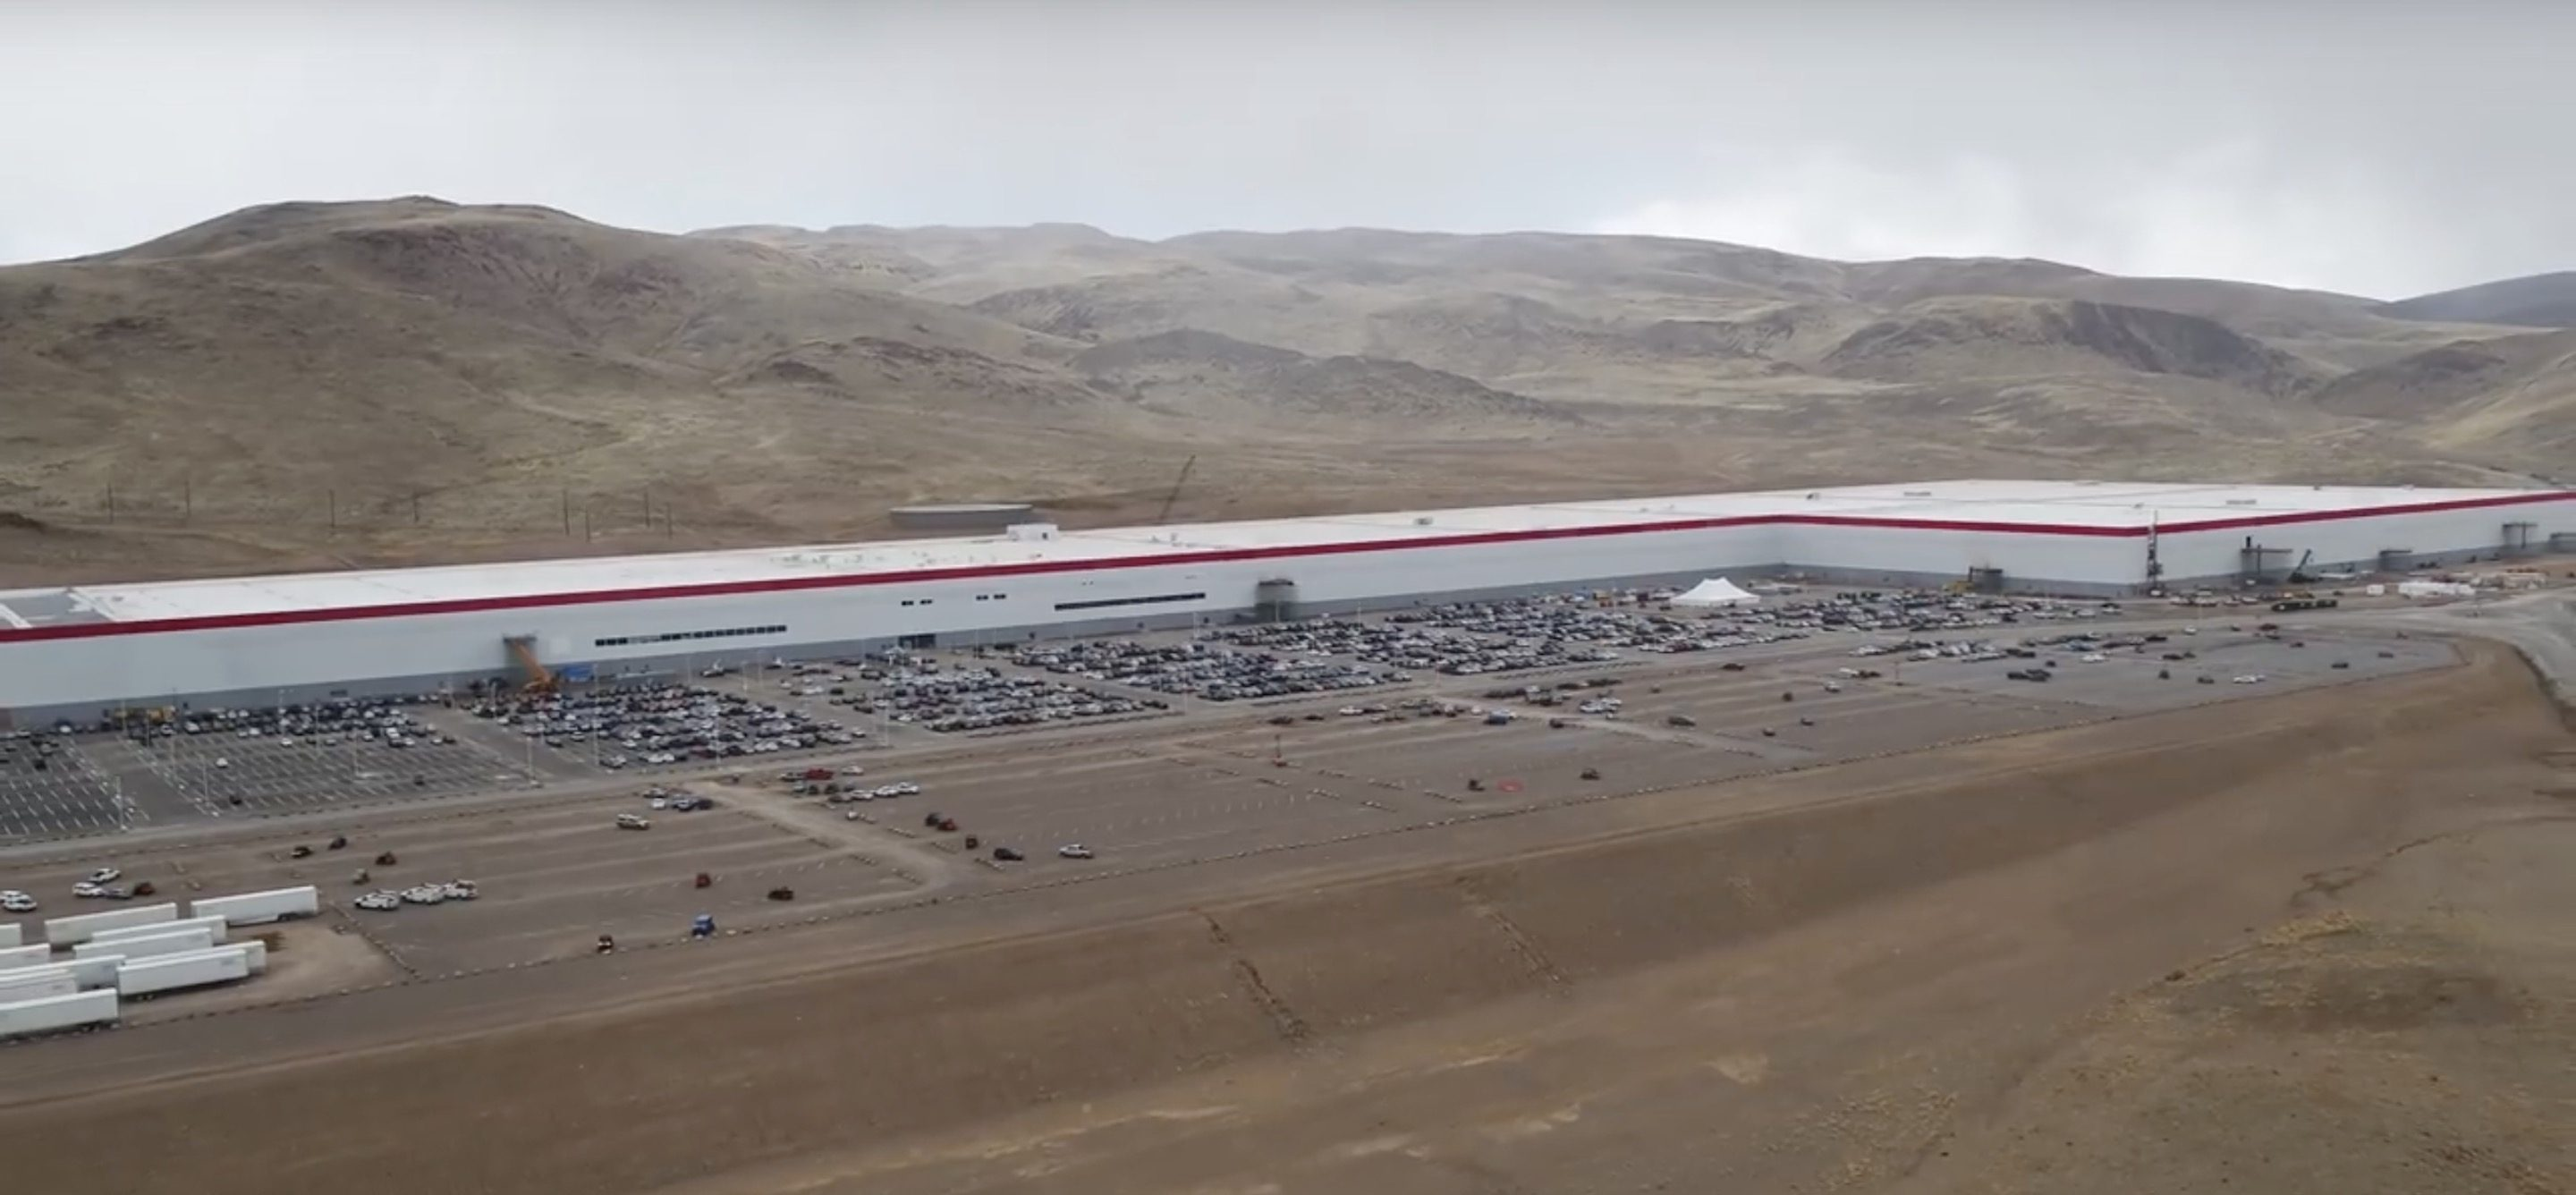 Tesla to achieve leading $100/kWh battery cell cost this year, says investor after Gigafactory 1 tour